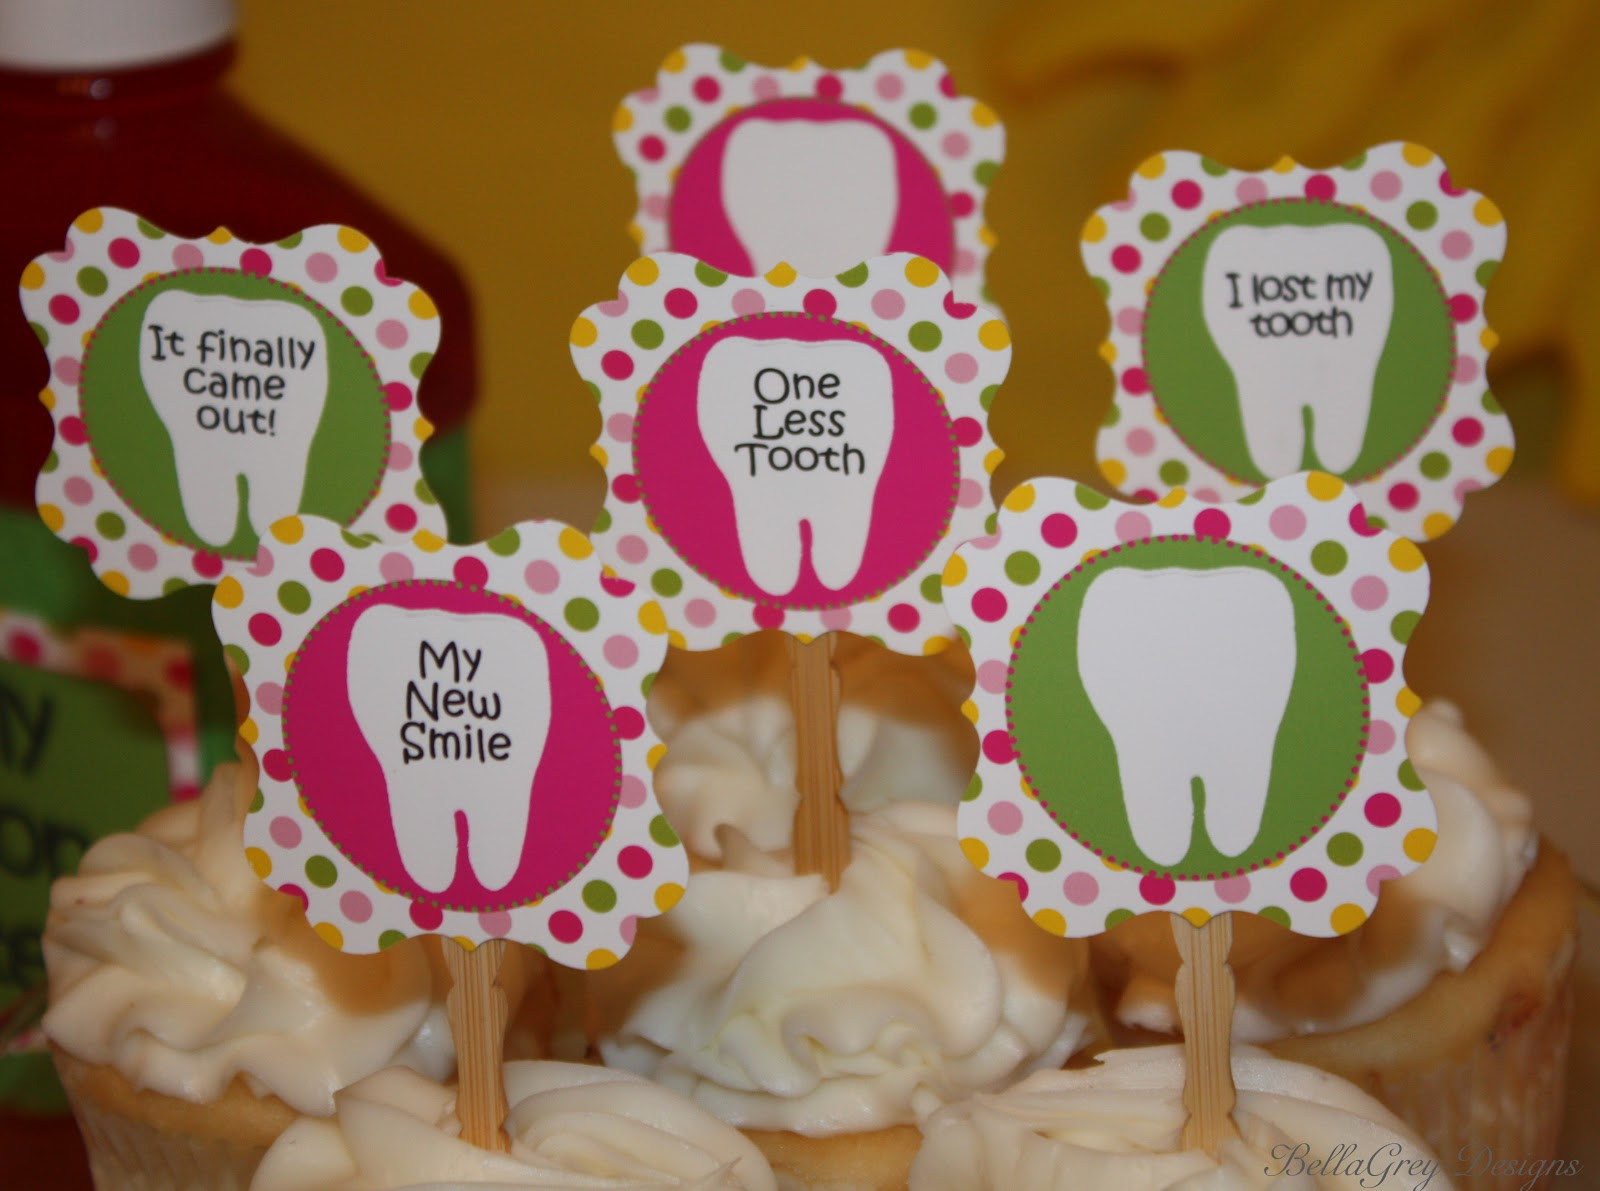 Bellagrey Designs Real Party One Less Tooth Amp New